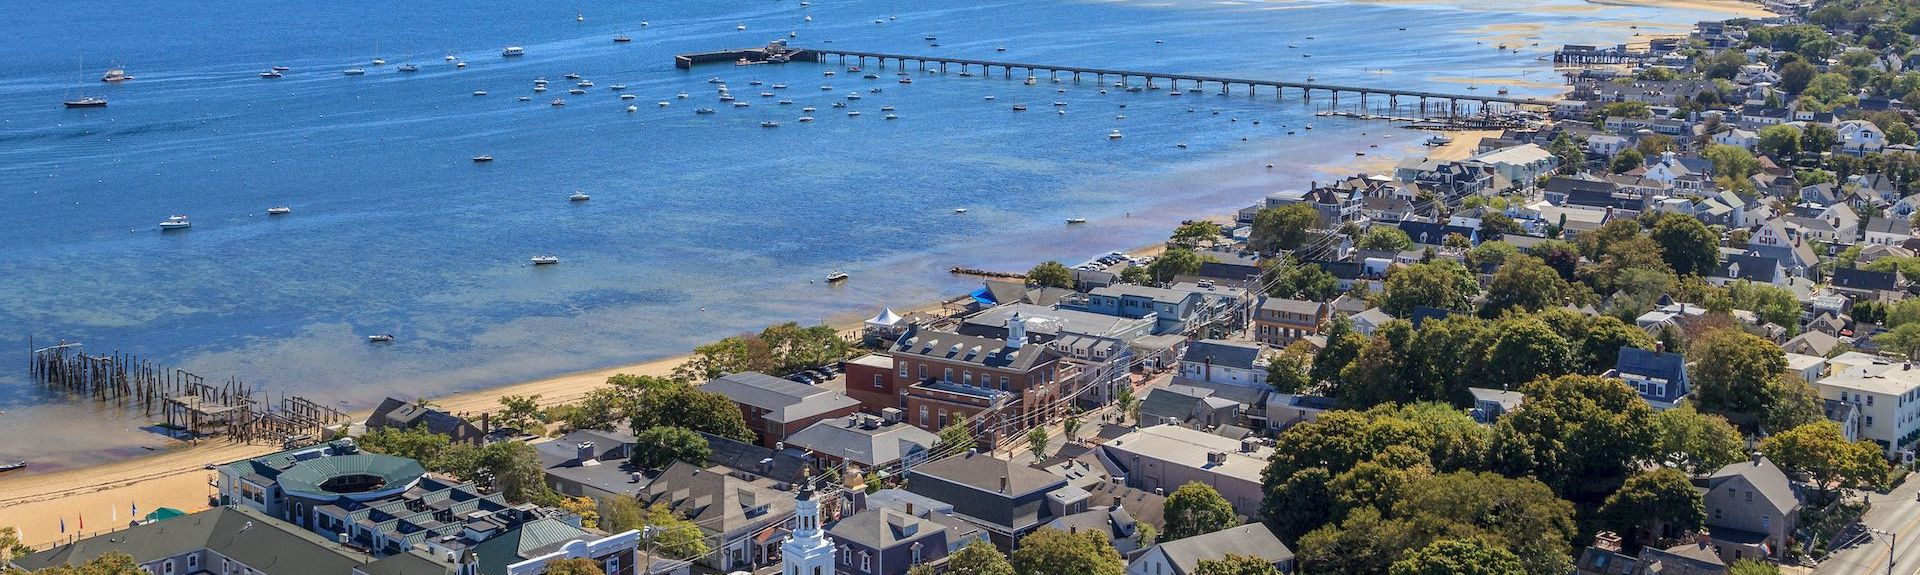 Provincetown, Massachusetts, United States of America